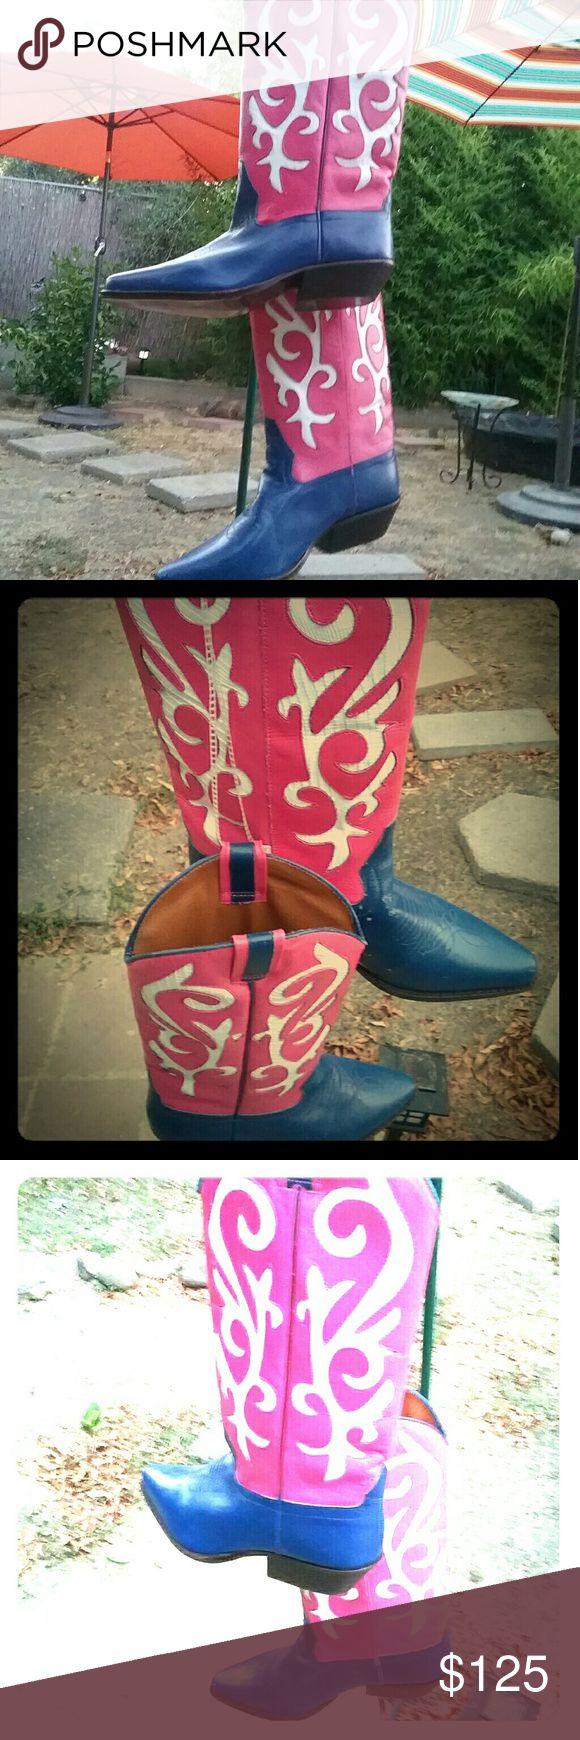 PINK White & Blue! (CowGirl Boots) Authentic Leather Pink White & Blue CowGirl Boots Made it Italy. Size 6.5 1989 Place Shoes Heeled Boots